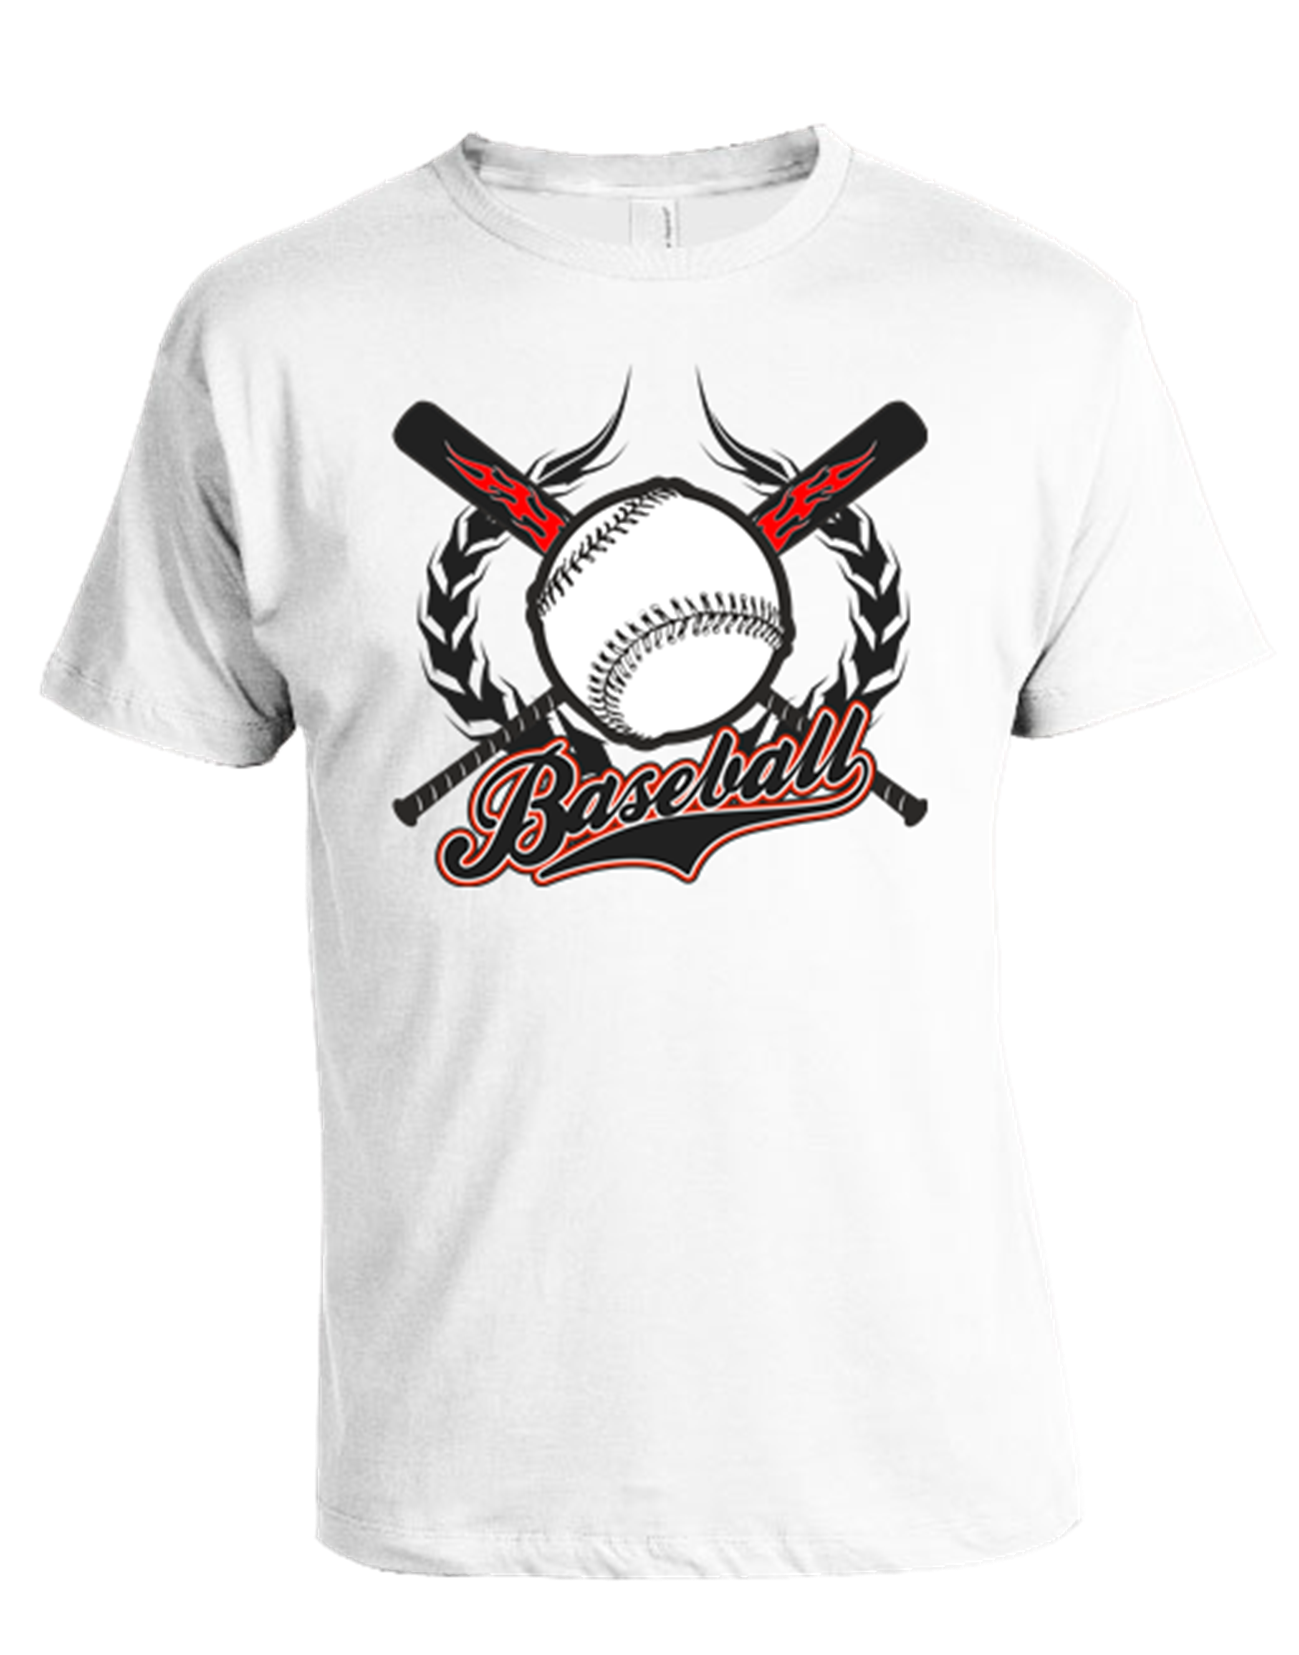 Baseball T Shirt Designs Ideas view our baseball designs see all baseball designs Baseball Design T Shirt